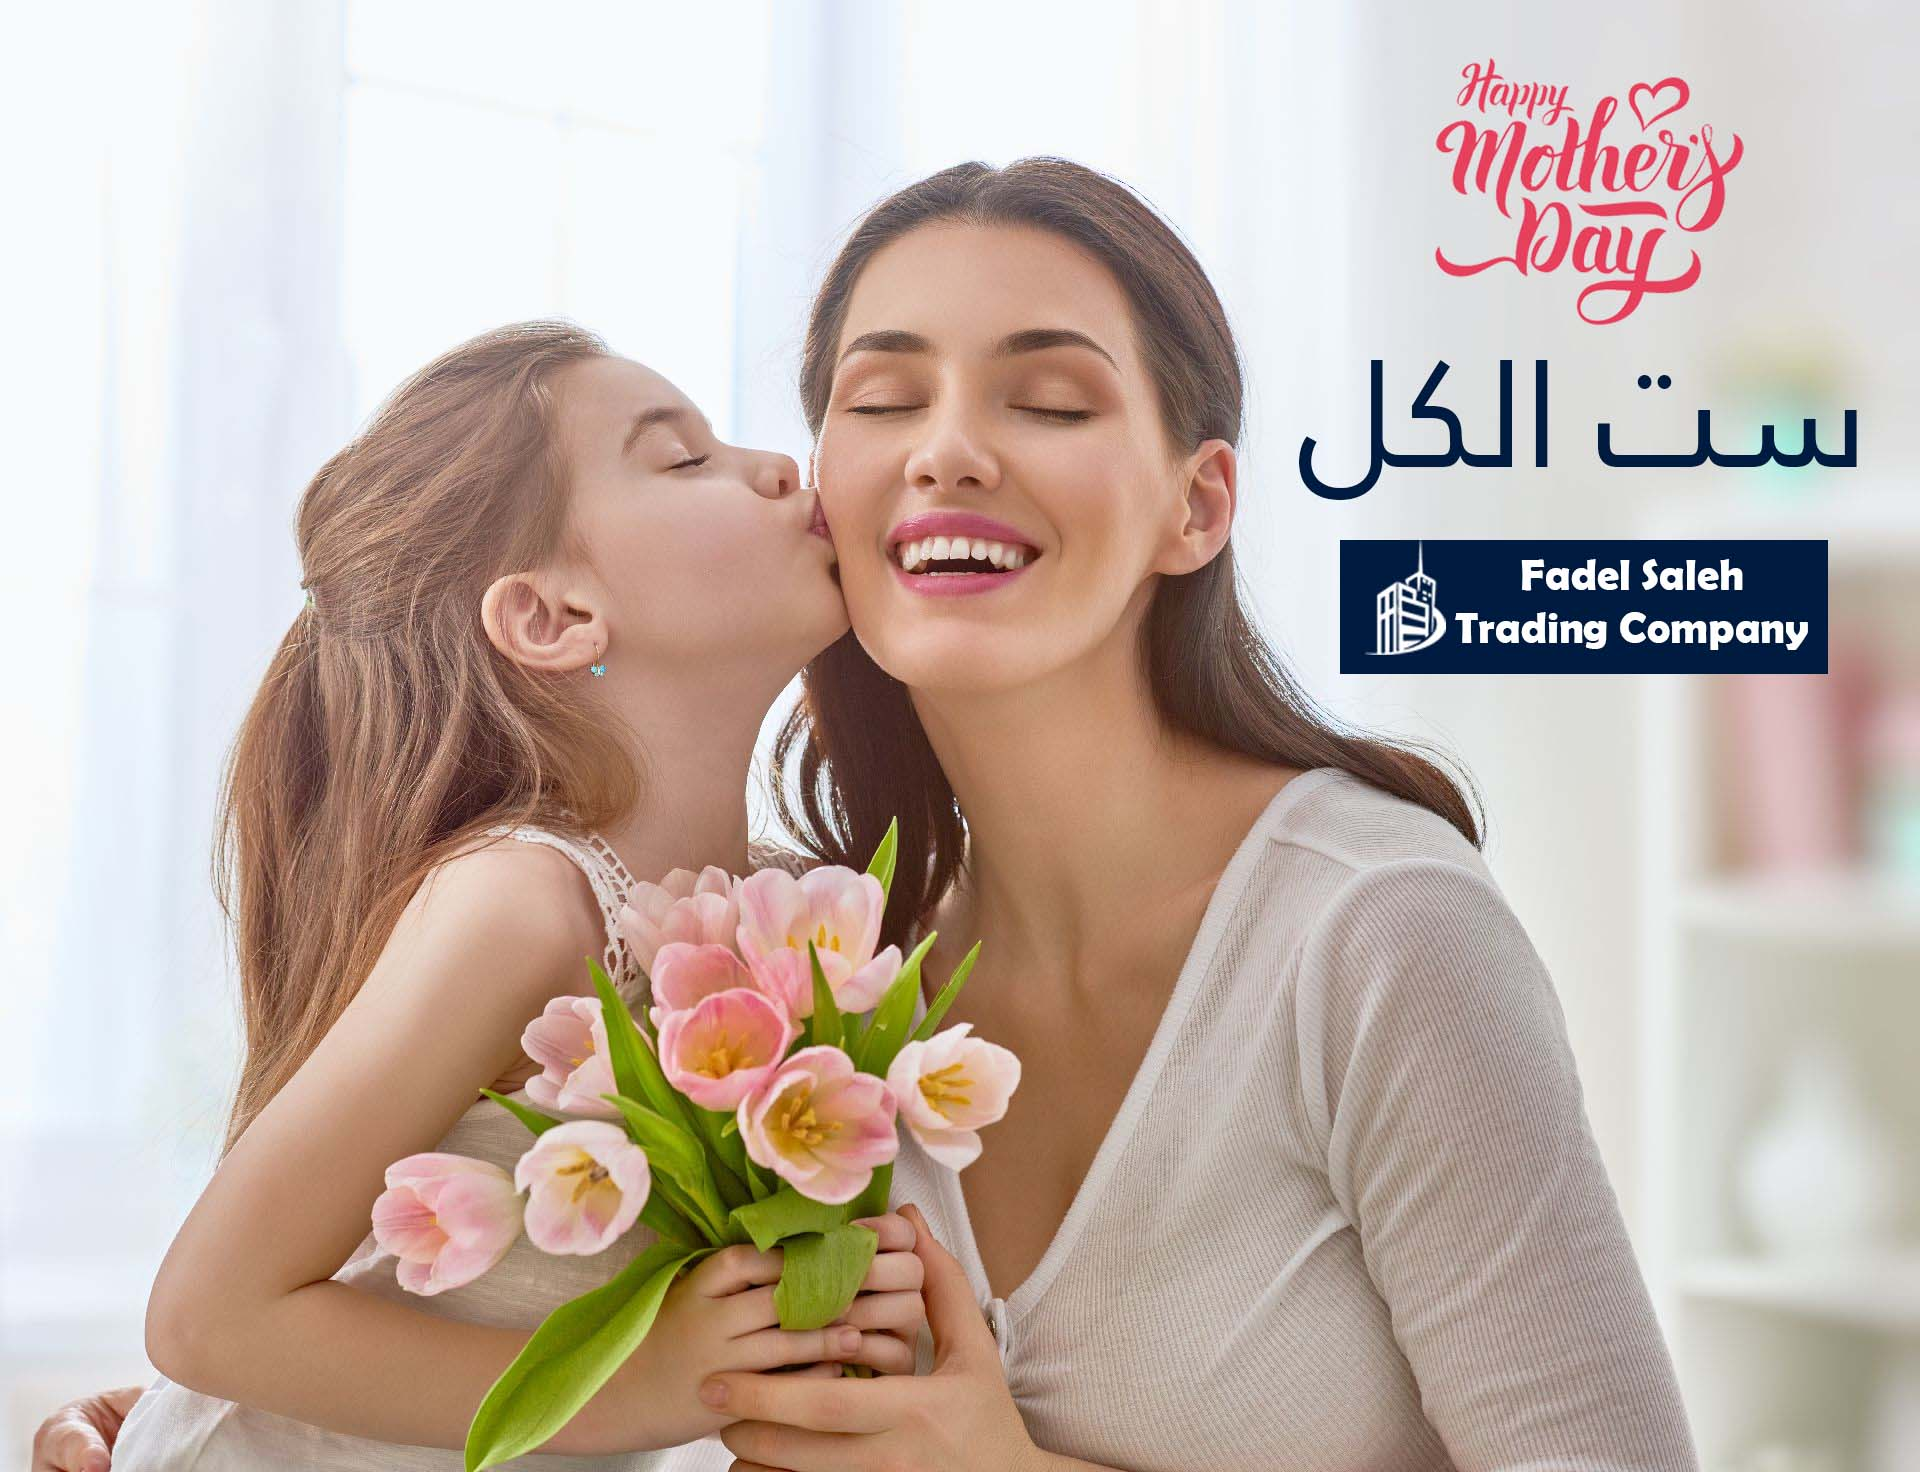 Happy Mothers Day From Fadel Saleh Trading Company